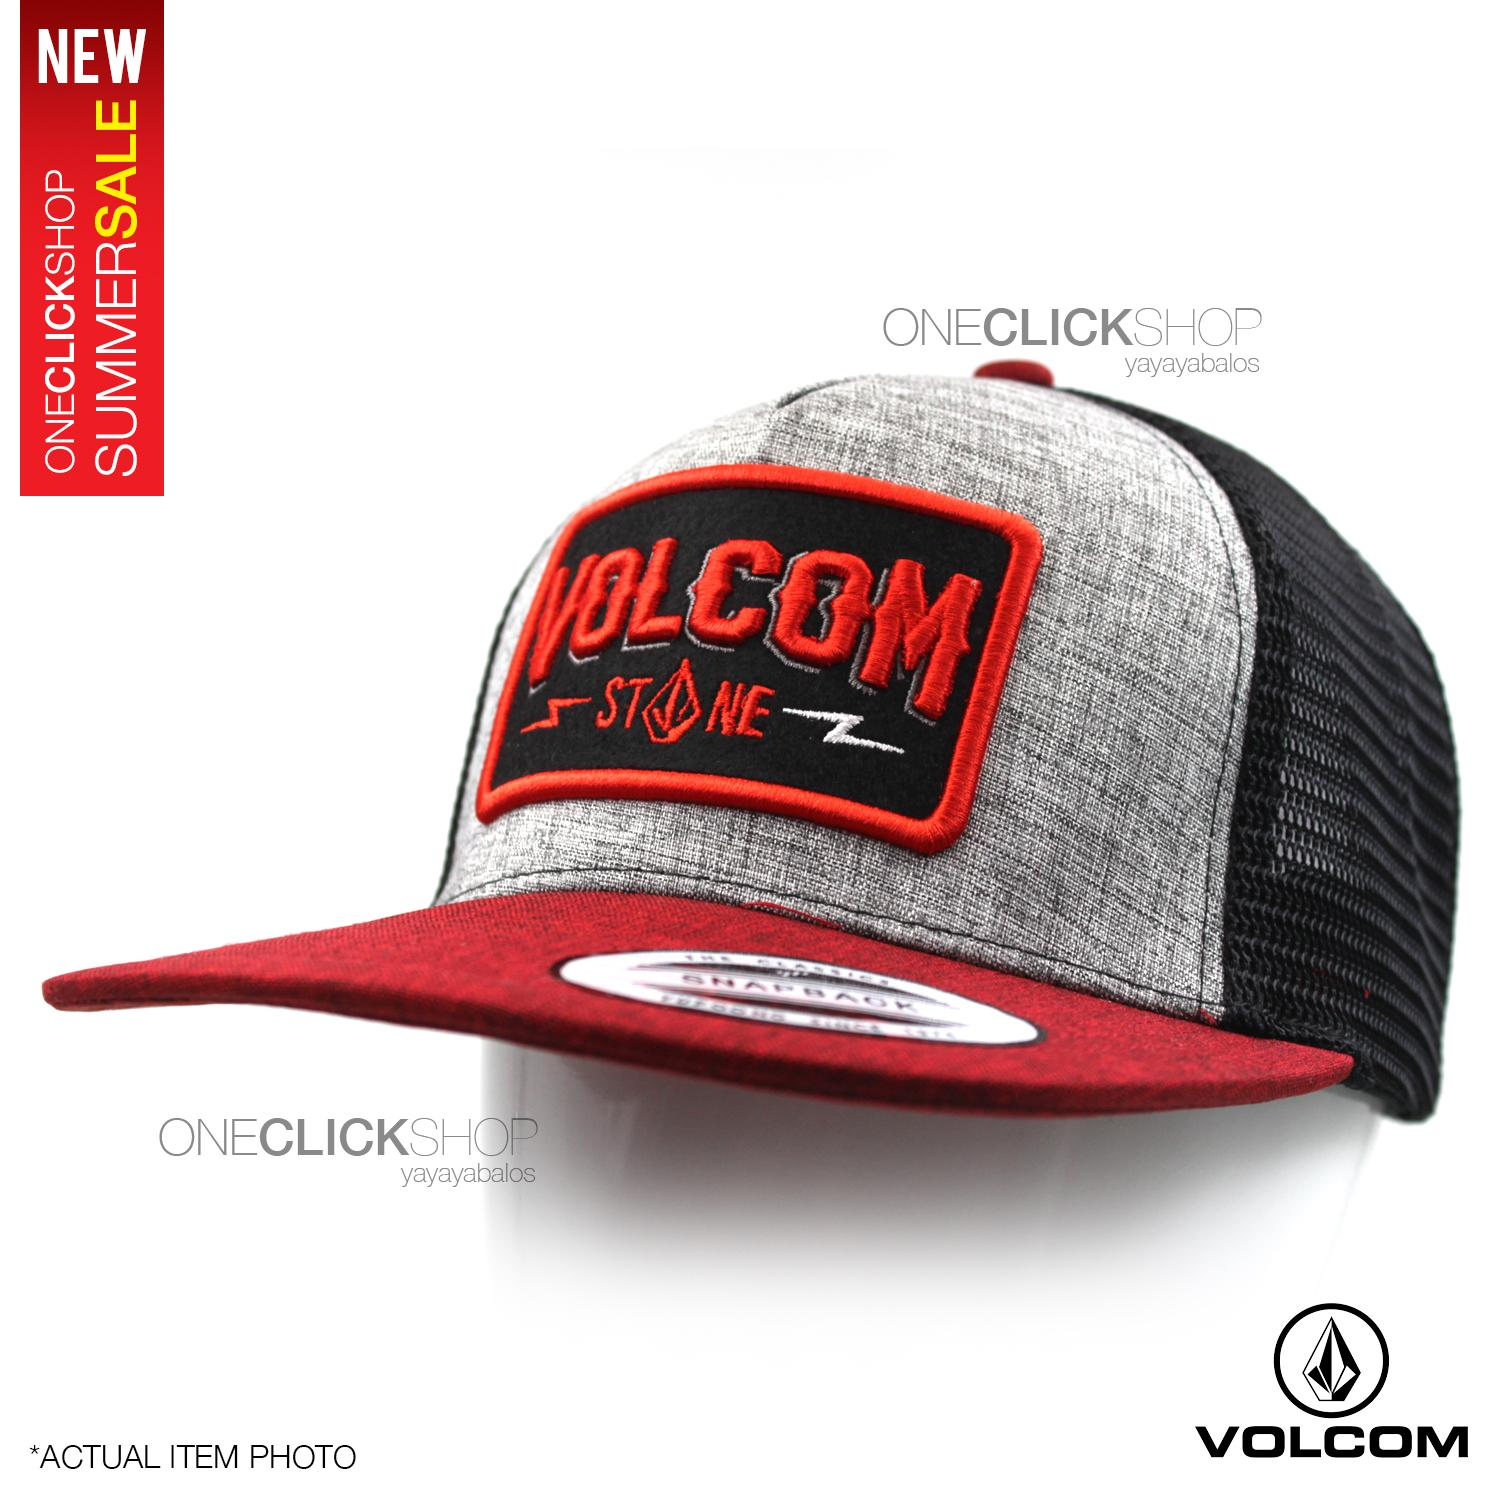 d5b74af3 Volcom Philippines: Volcom price list - Hats, Pants, & Accessories ...